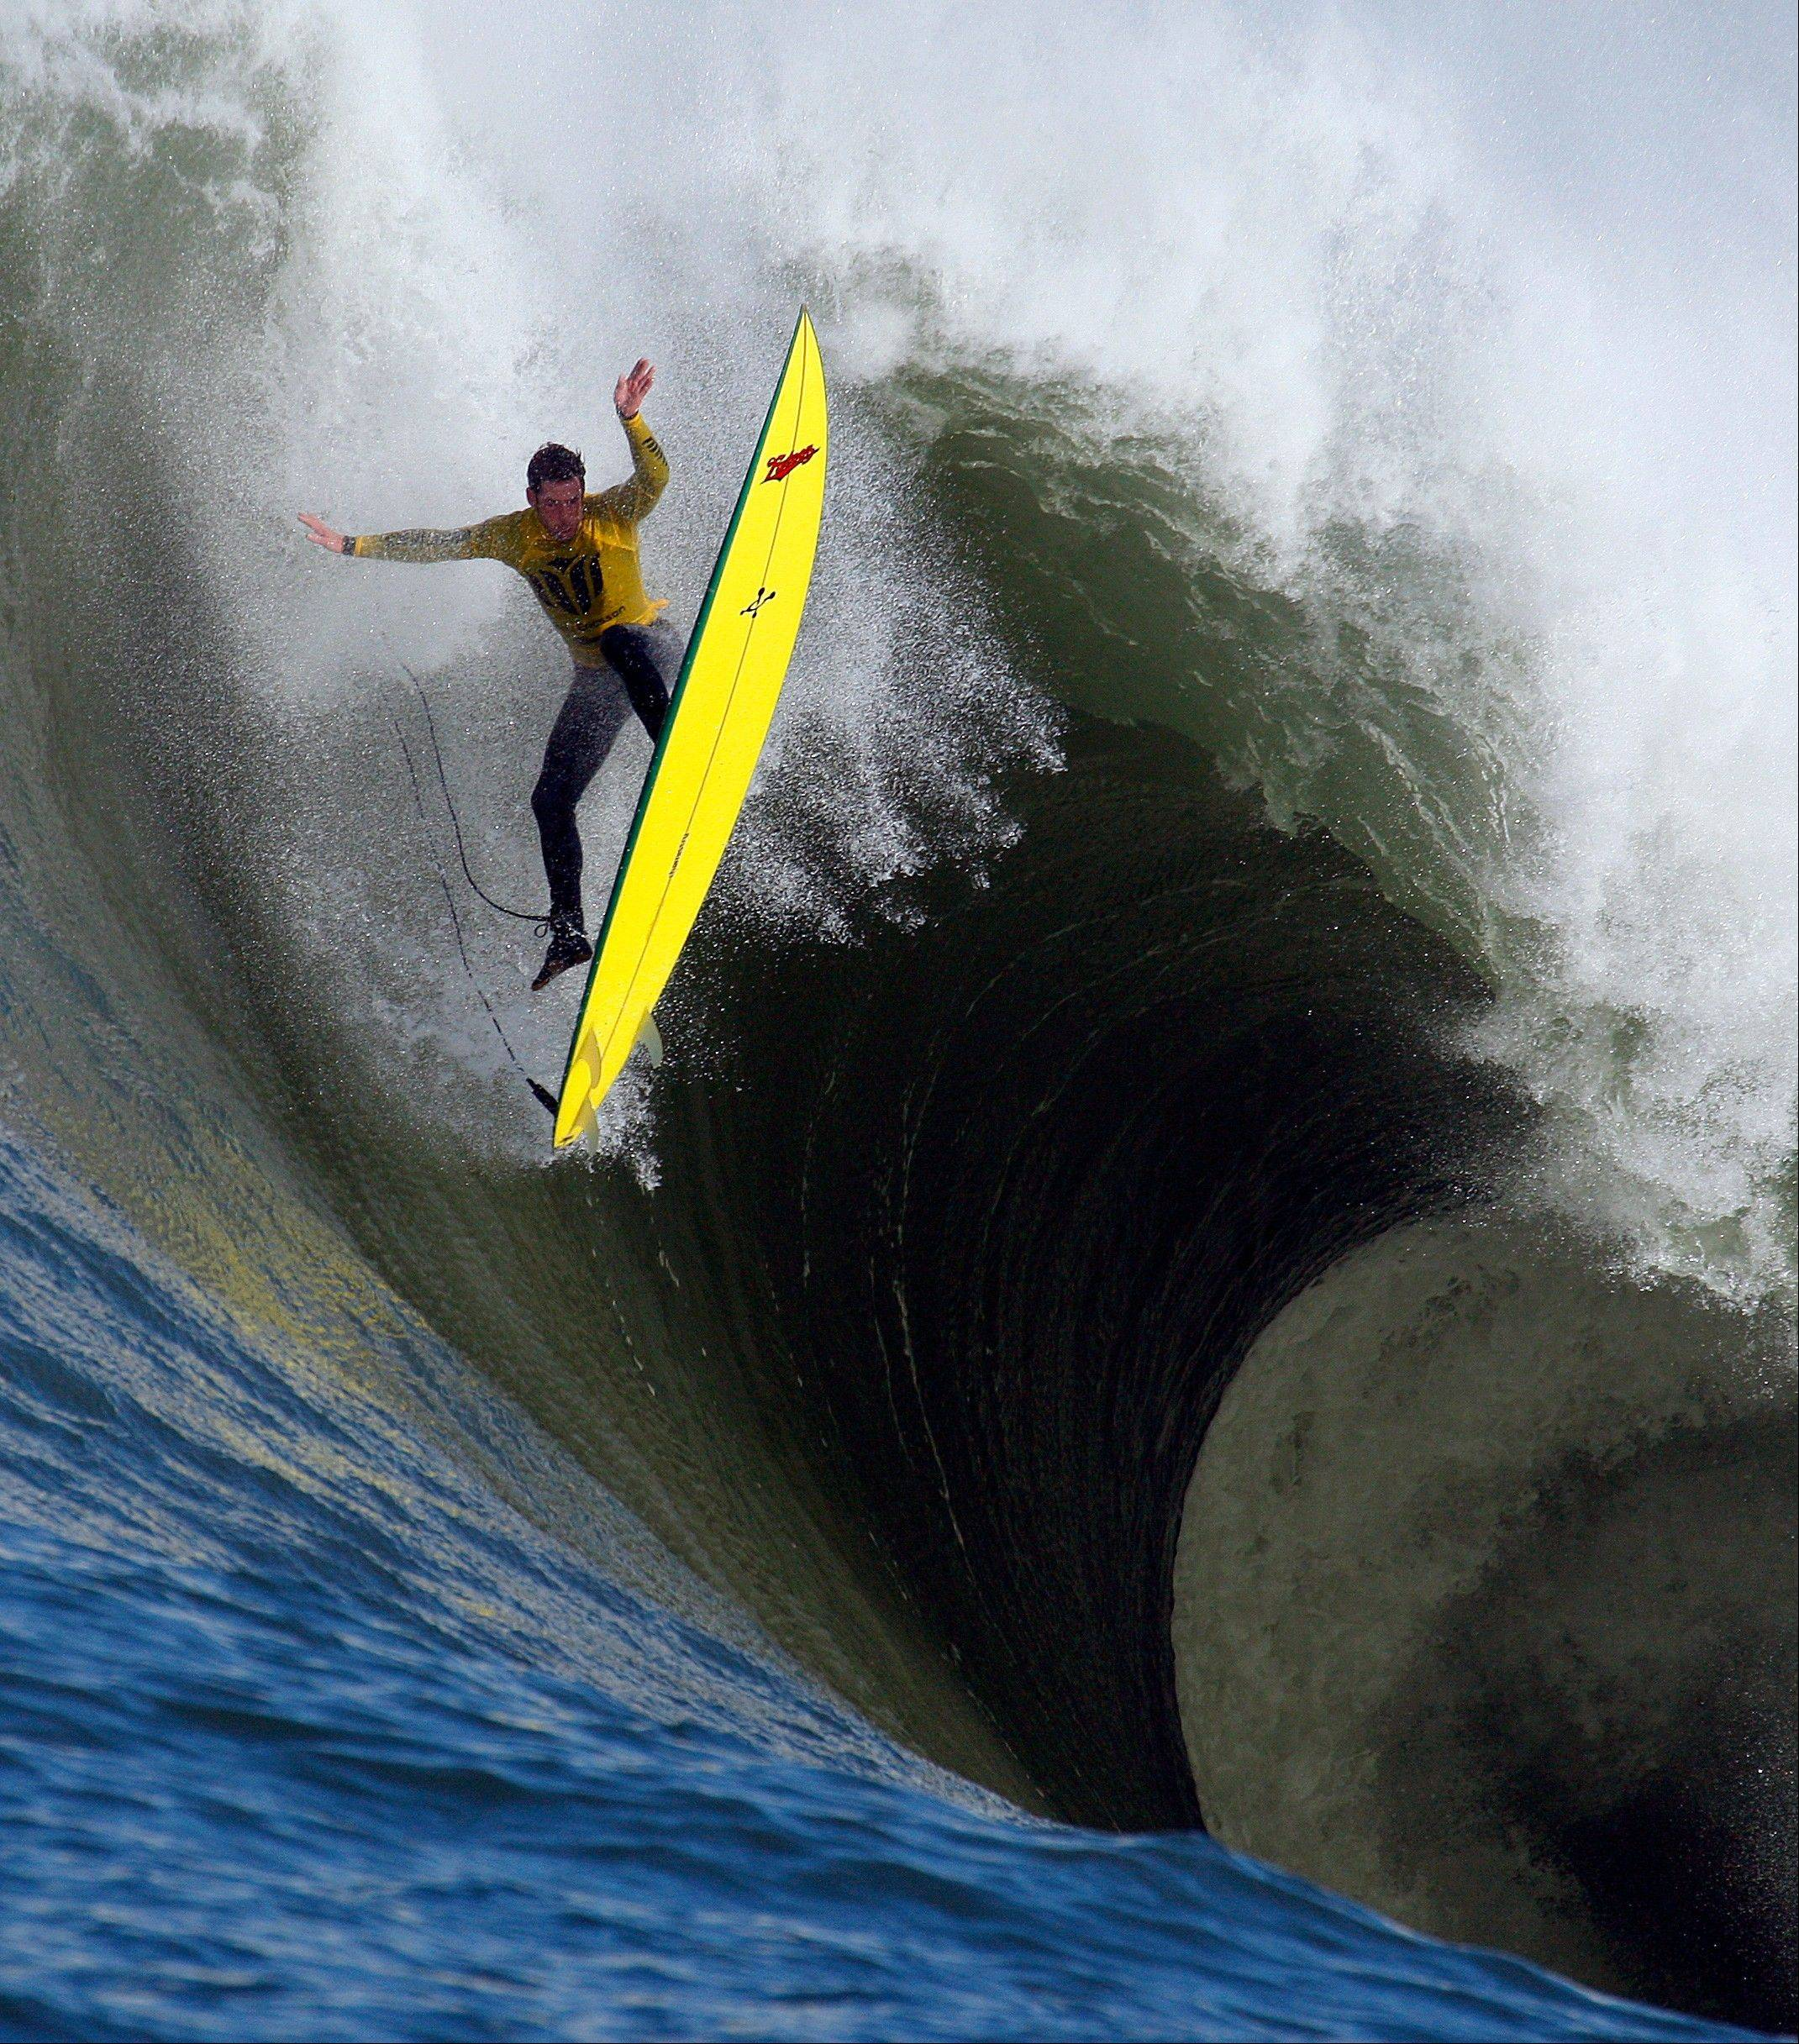 In this file photo from Saturday, Feb. 13, 2010, Ion Banner loses control on a giant wave during the Mavericks surfing contest in Half Moon Bay, Calif. As massive swells lumber across the Pacific toward Northern California, nearly two dozen of the world's best big wave surfers will be waiting to meet them Sunday, Jan. 20, 2013, a half-mile offshore at the infamous surfing break Mavericks.